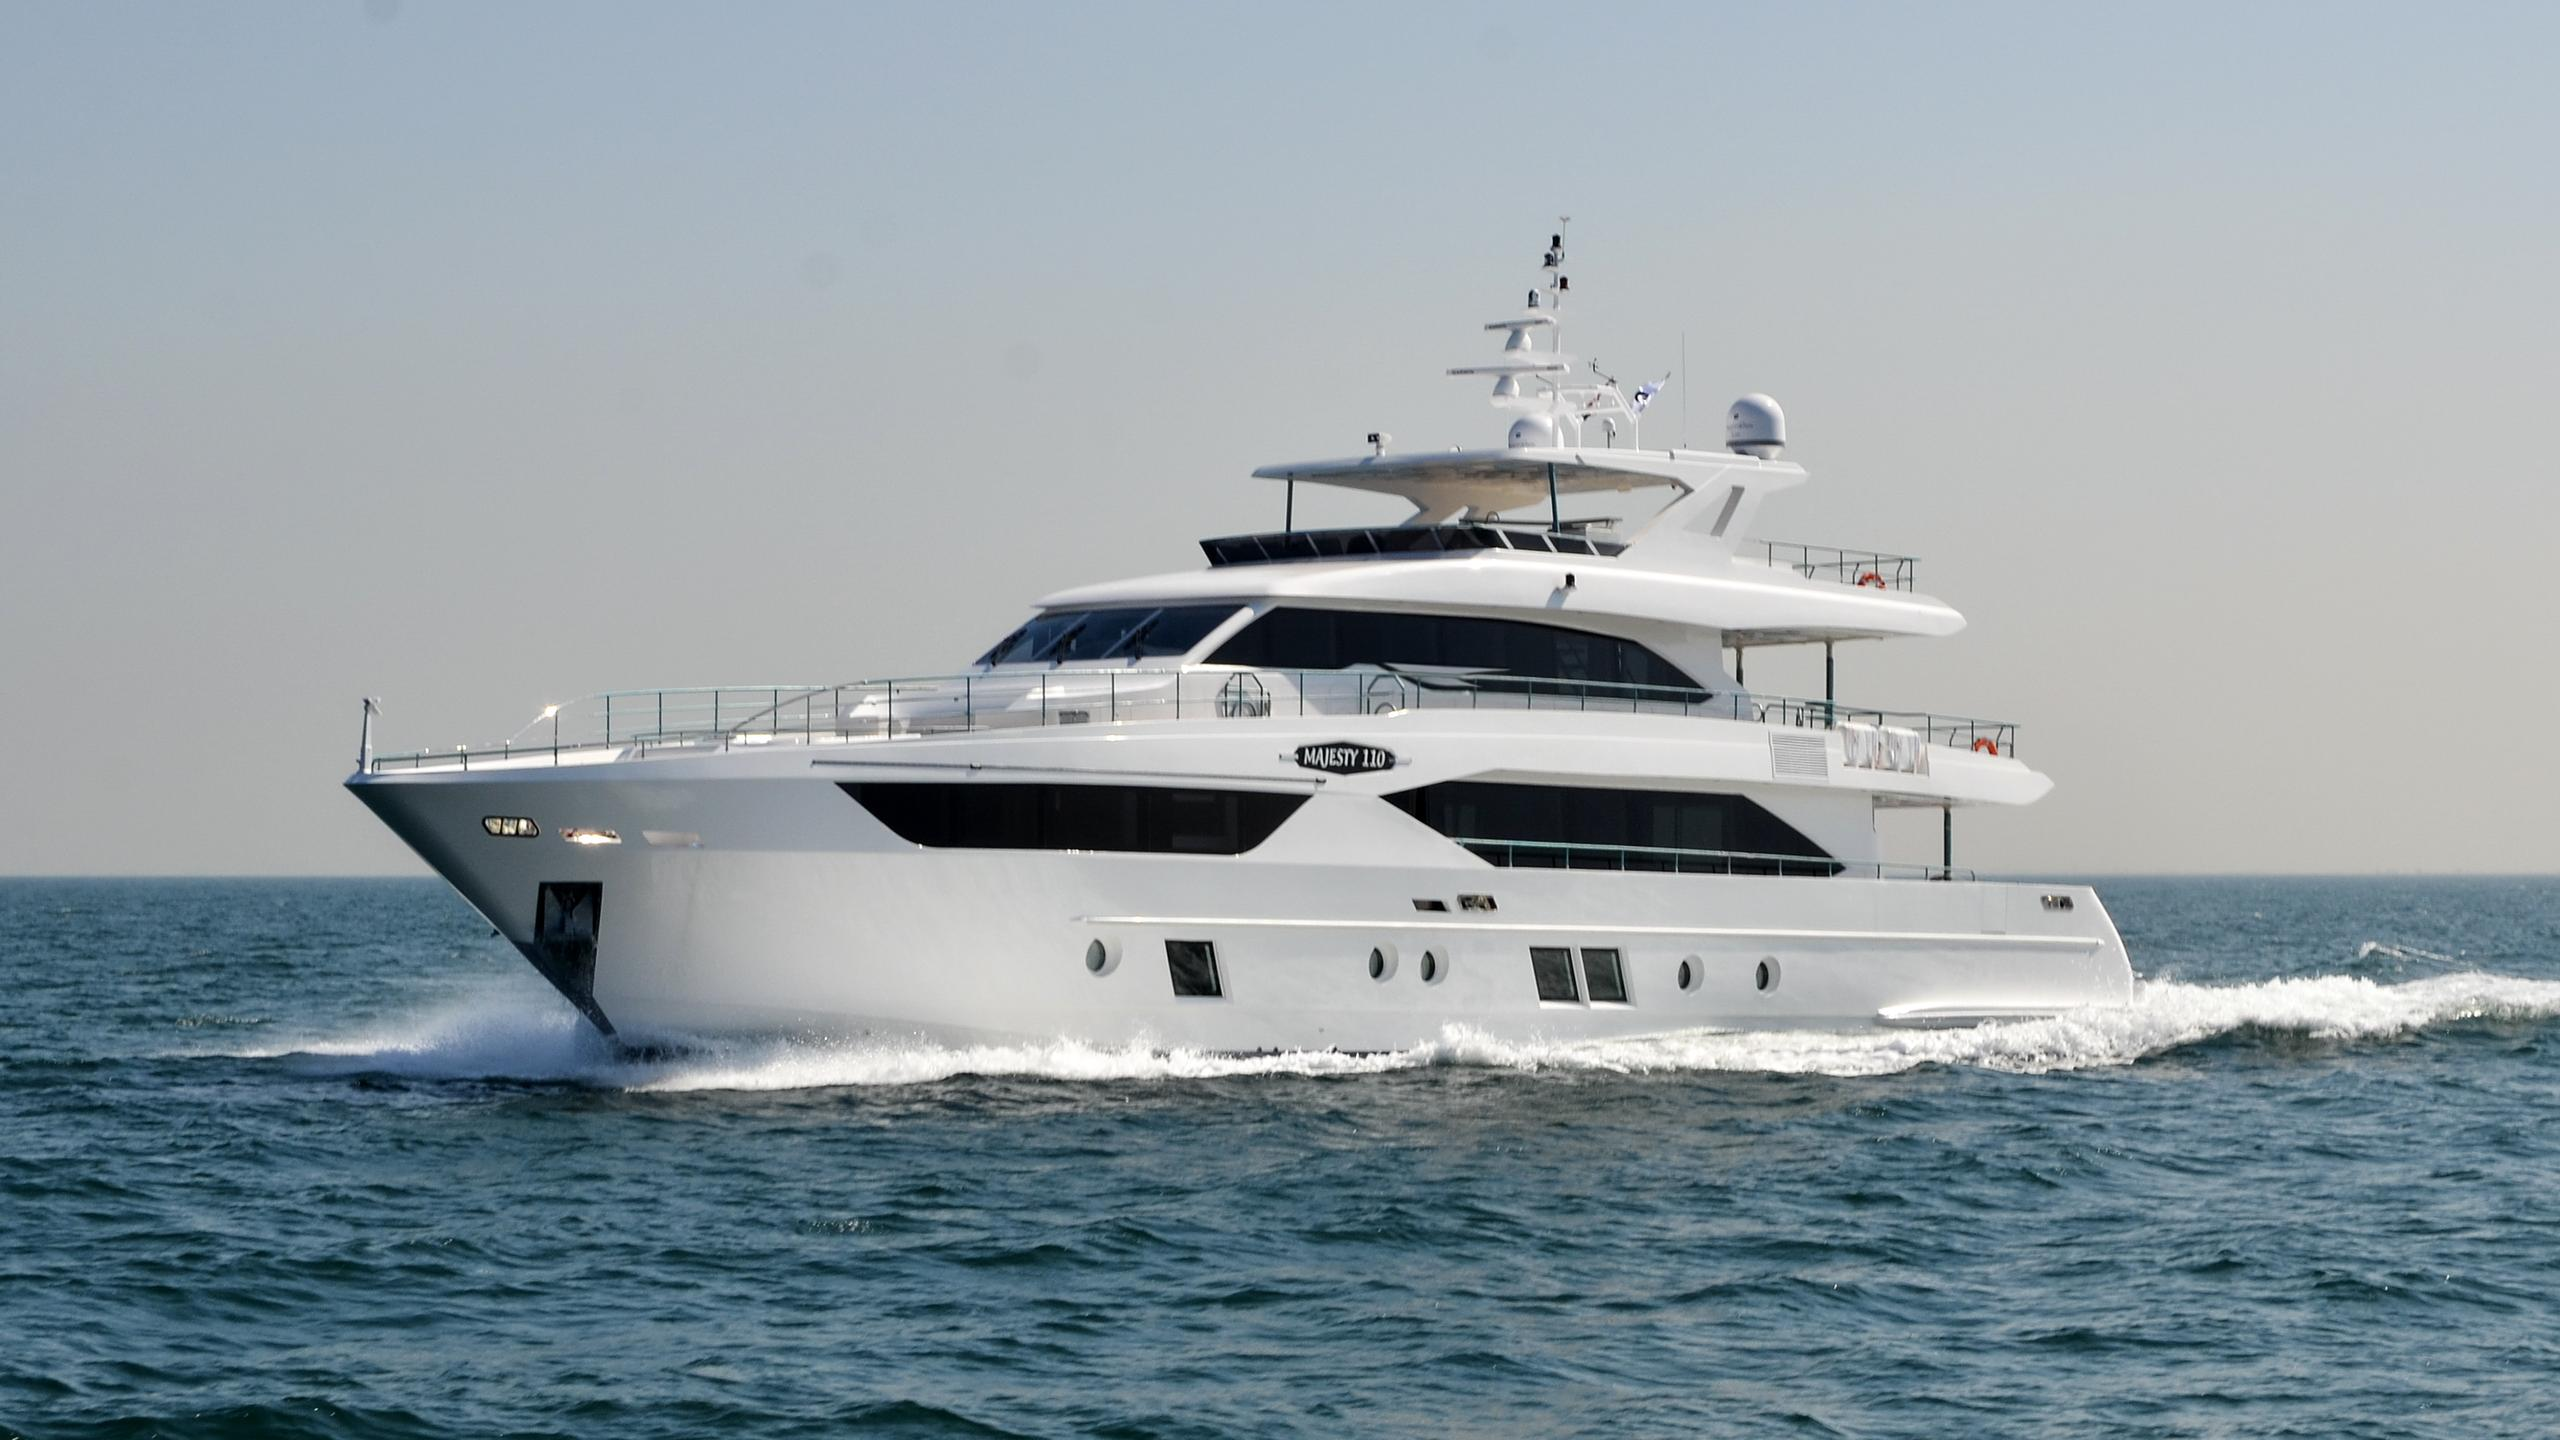 majesty-110-motoryacht-gulfcraft-majesty-110-2016-33m-running